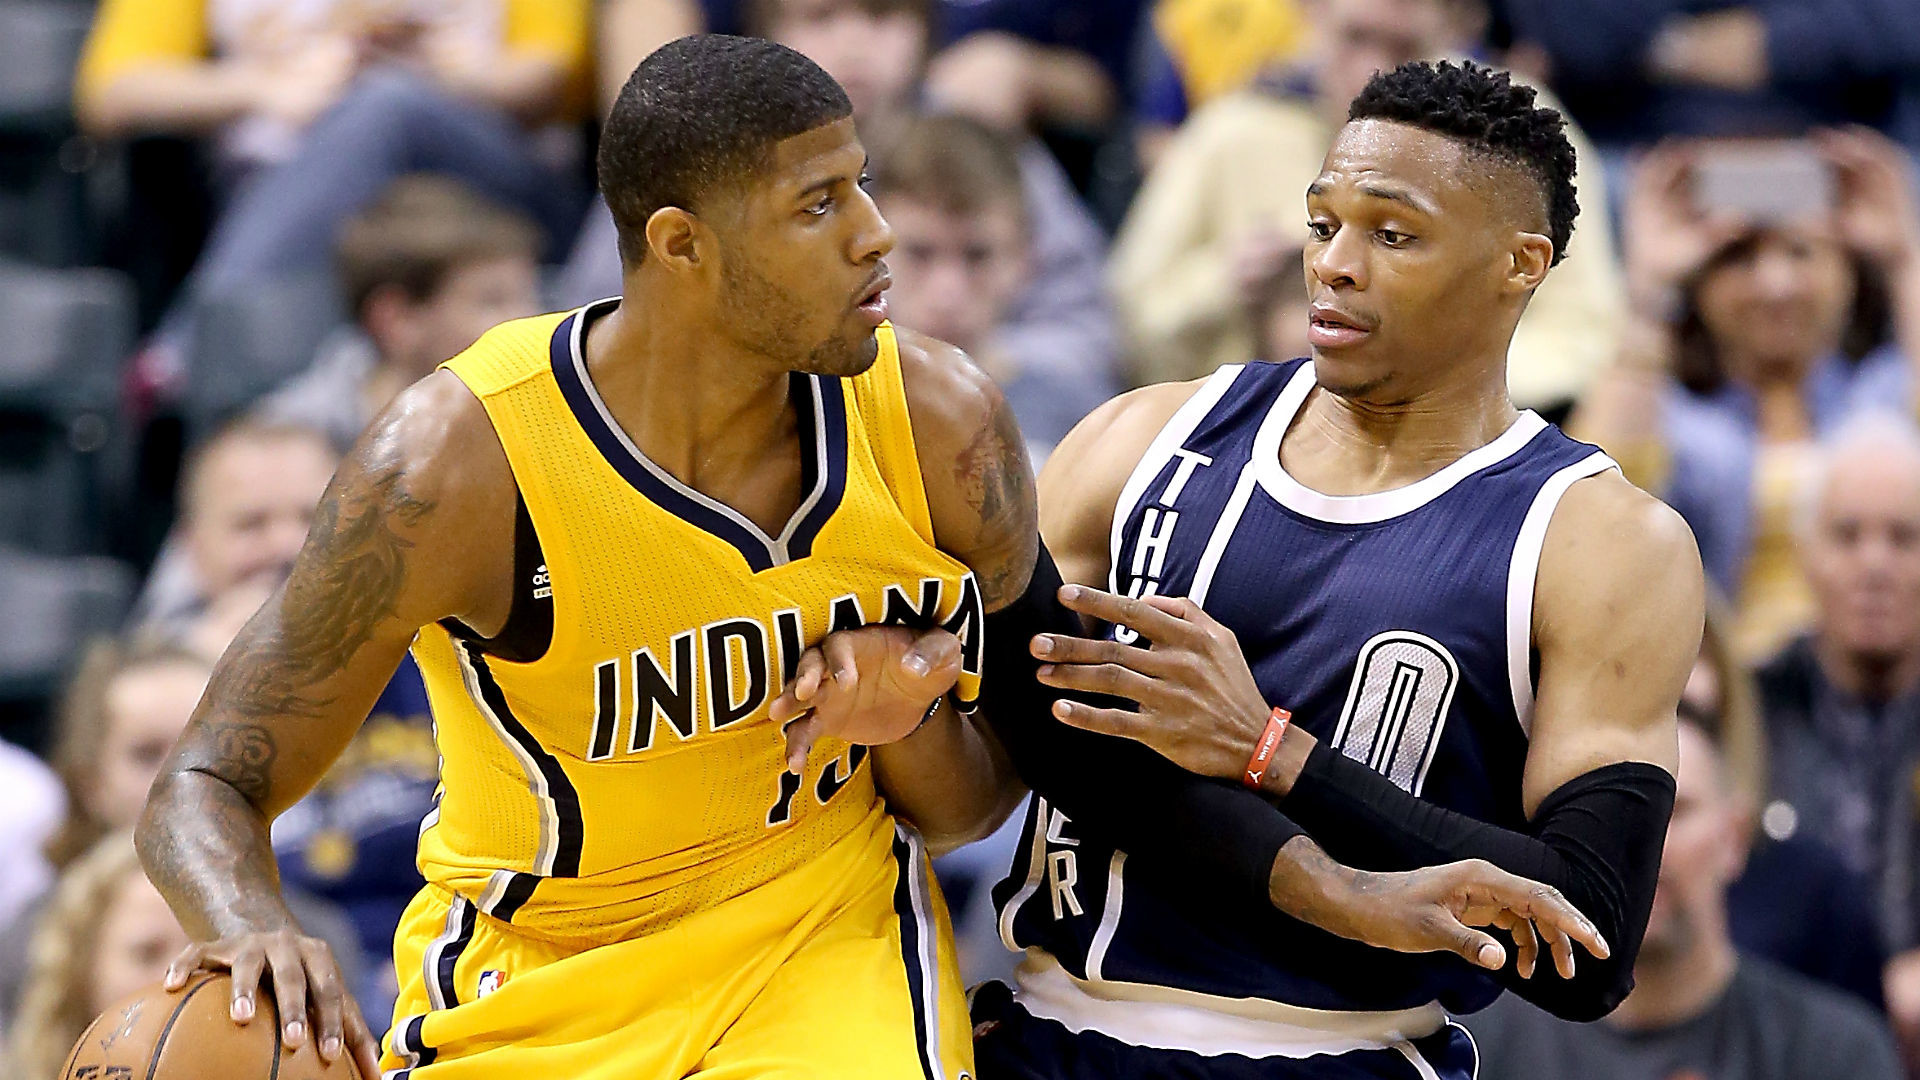 With bold move for Paul George, Thunder have eyes on keeping Westbrook |  NBA | Sporting News